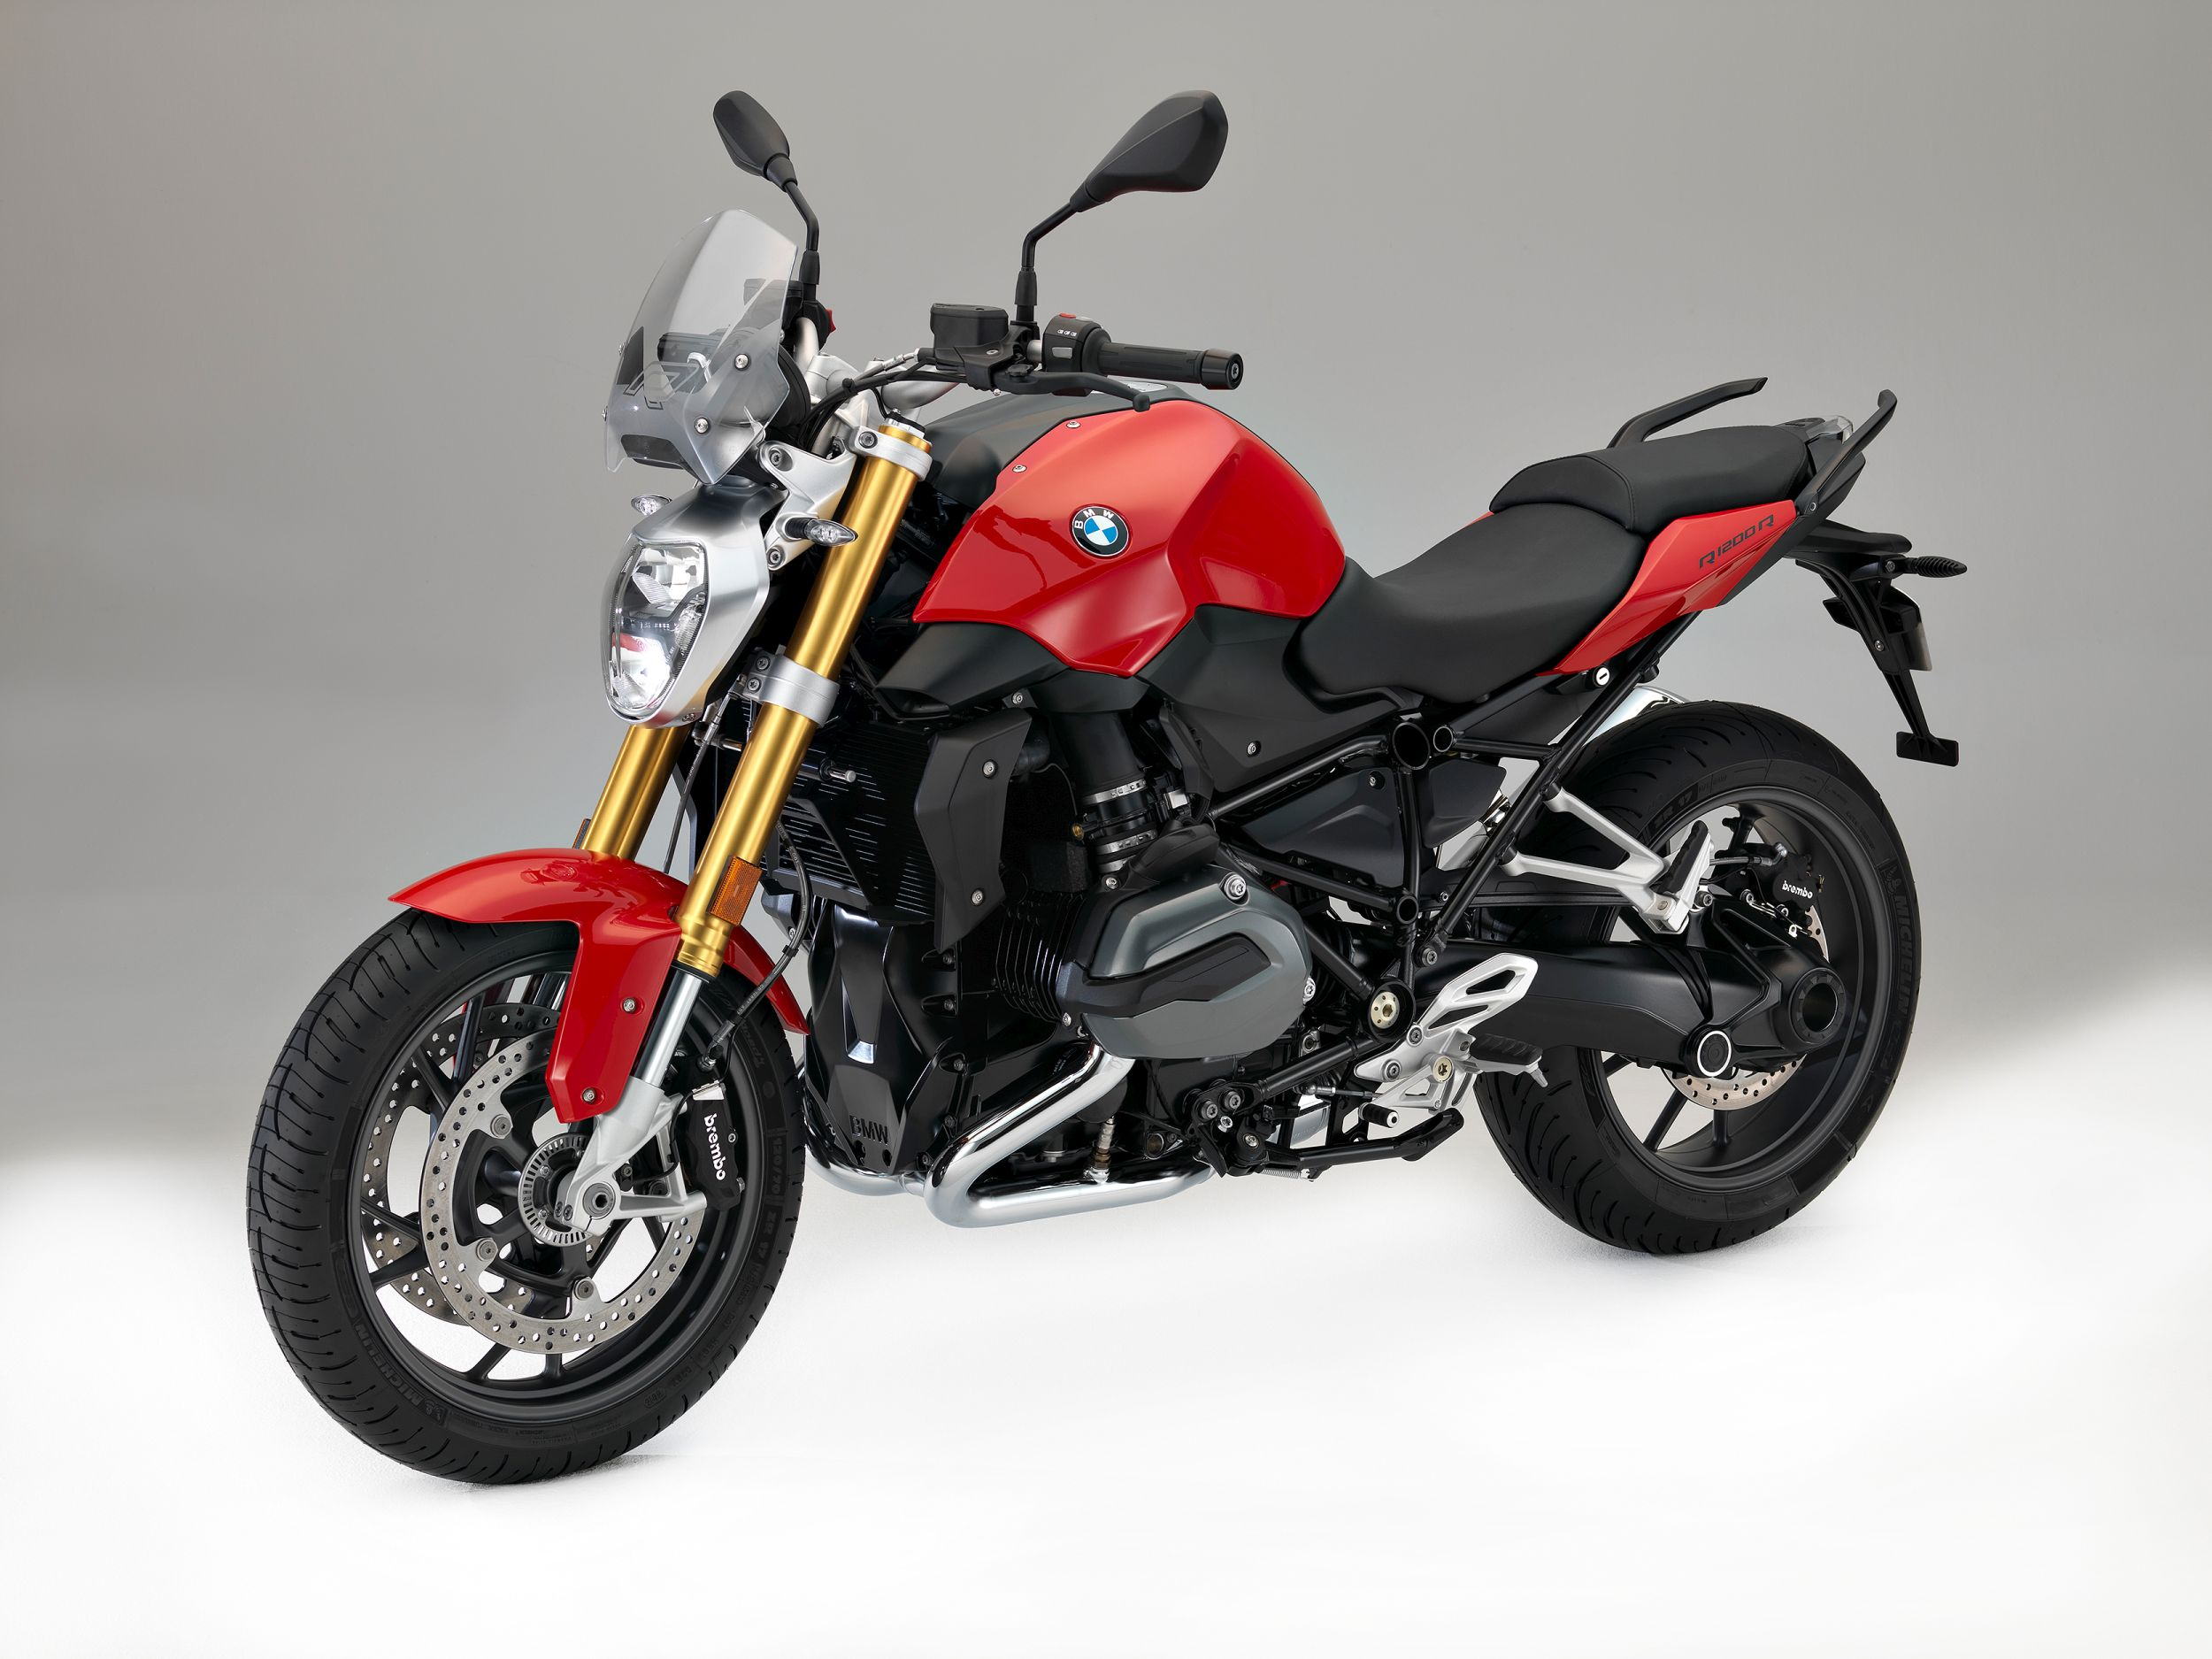 002 Extraordinary Bmw R 1200 R Street Fighter Cars Trend